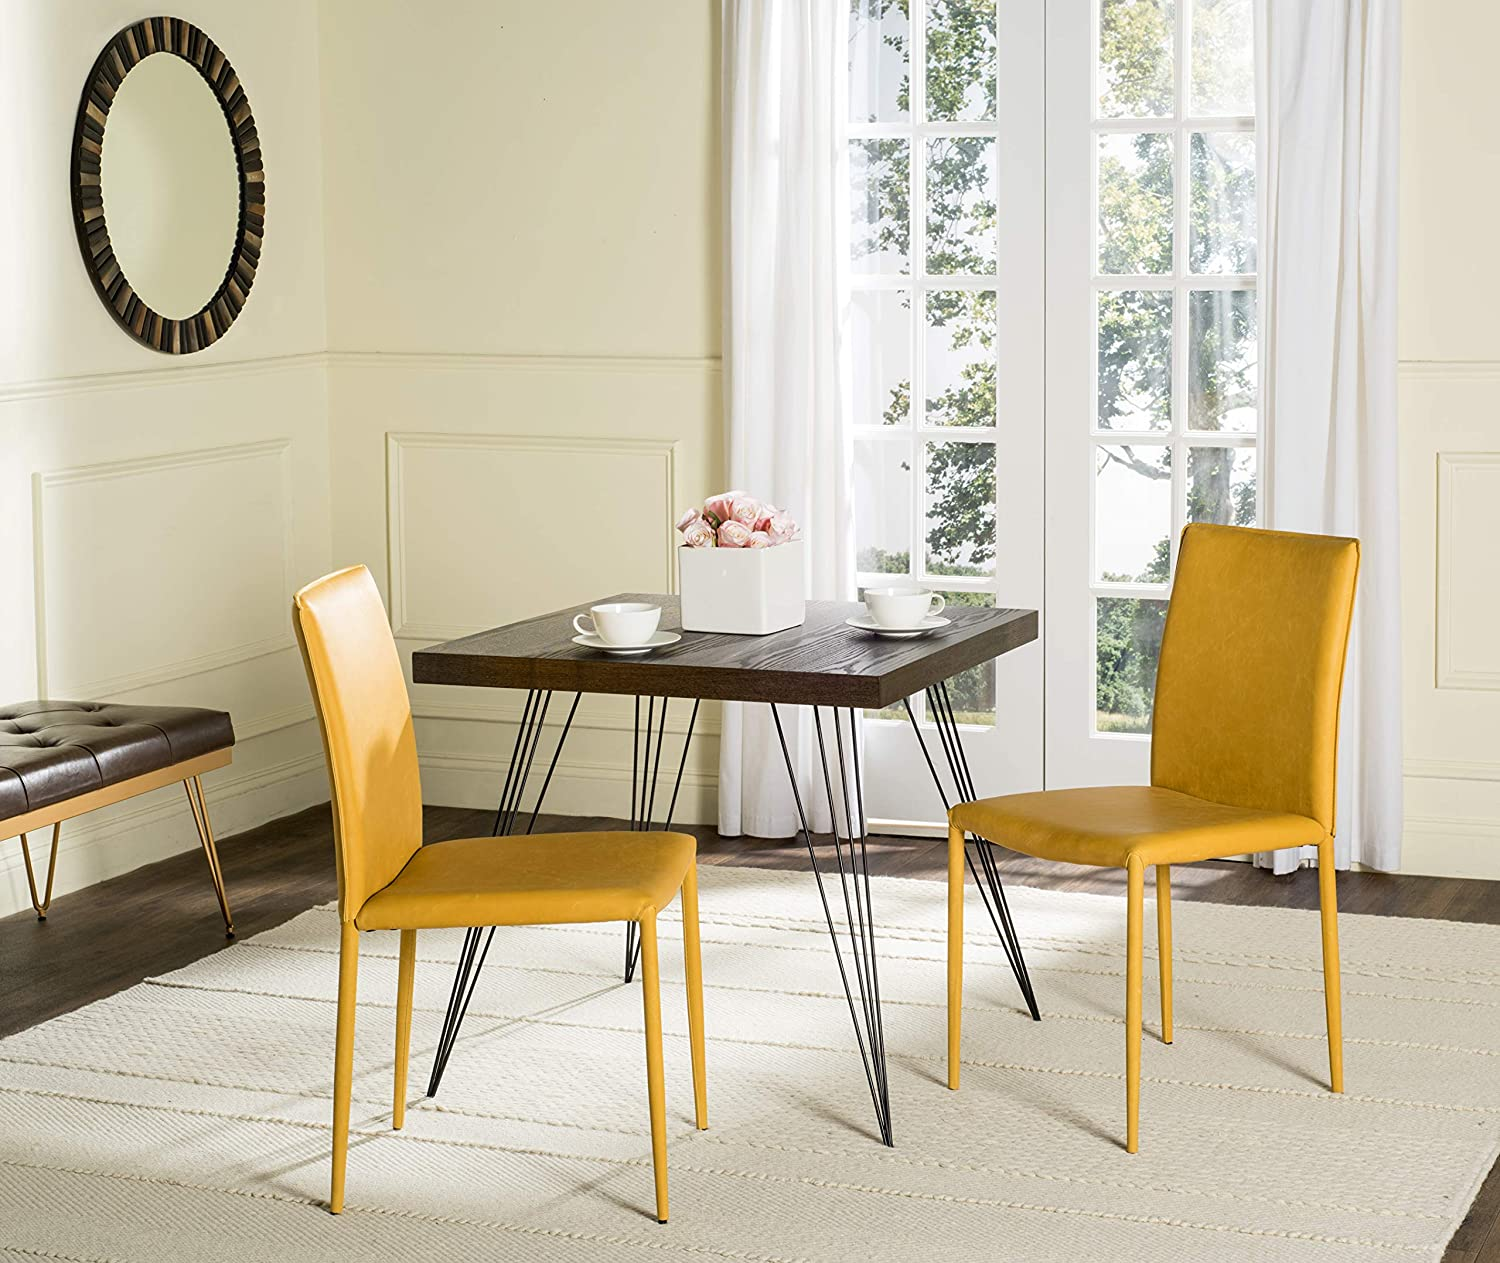 Safavieh Home Collection Karna Antique Yellow Bonded Leather Dining Chair (Set of 2)